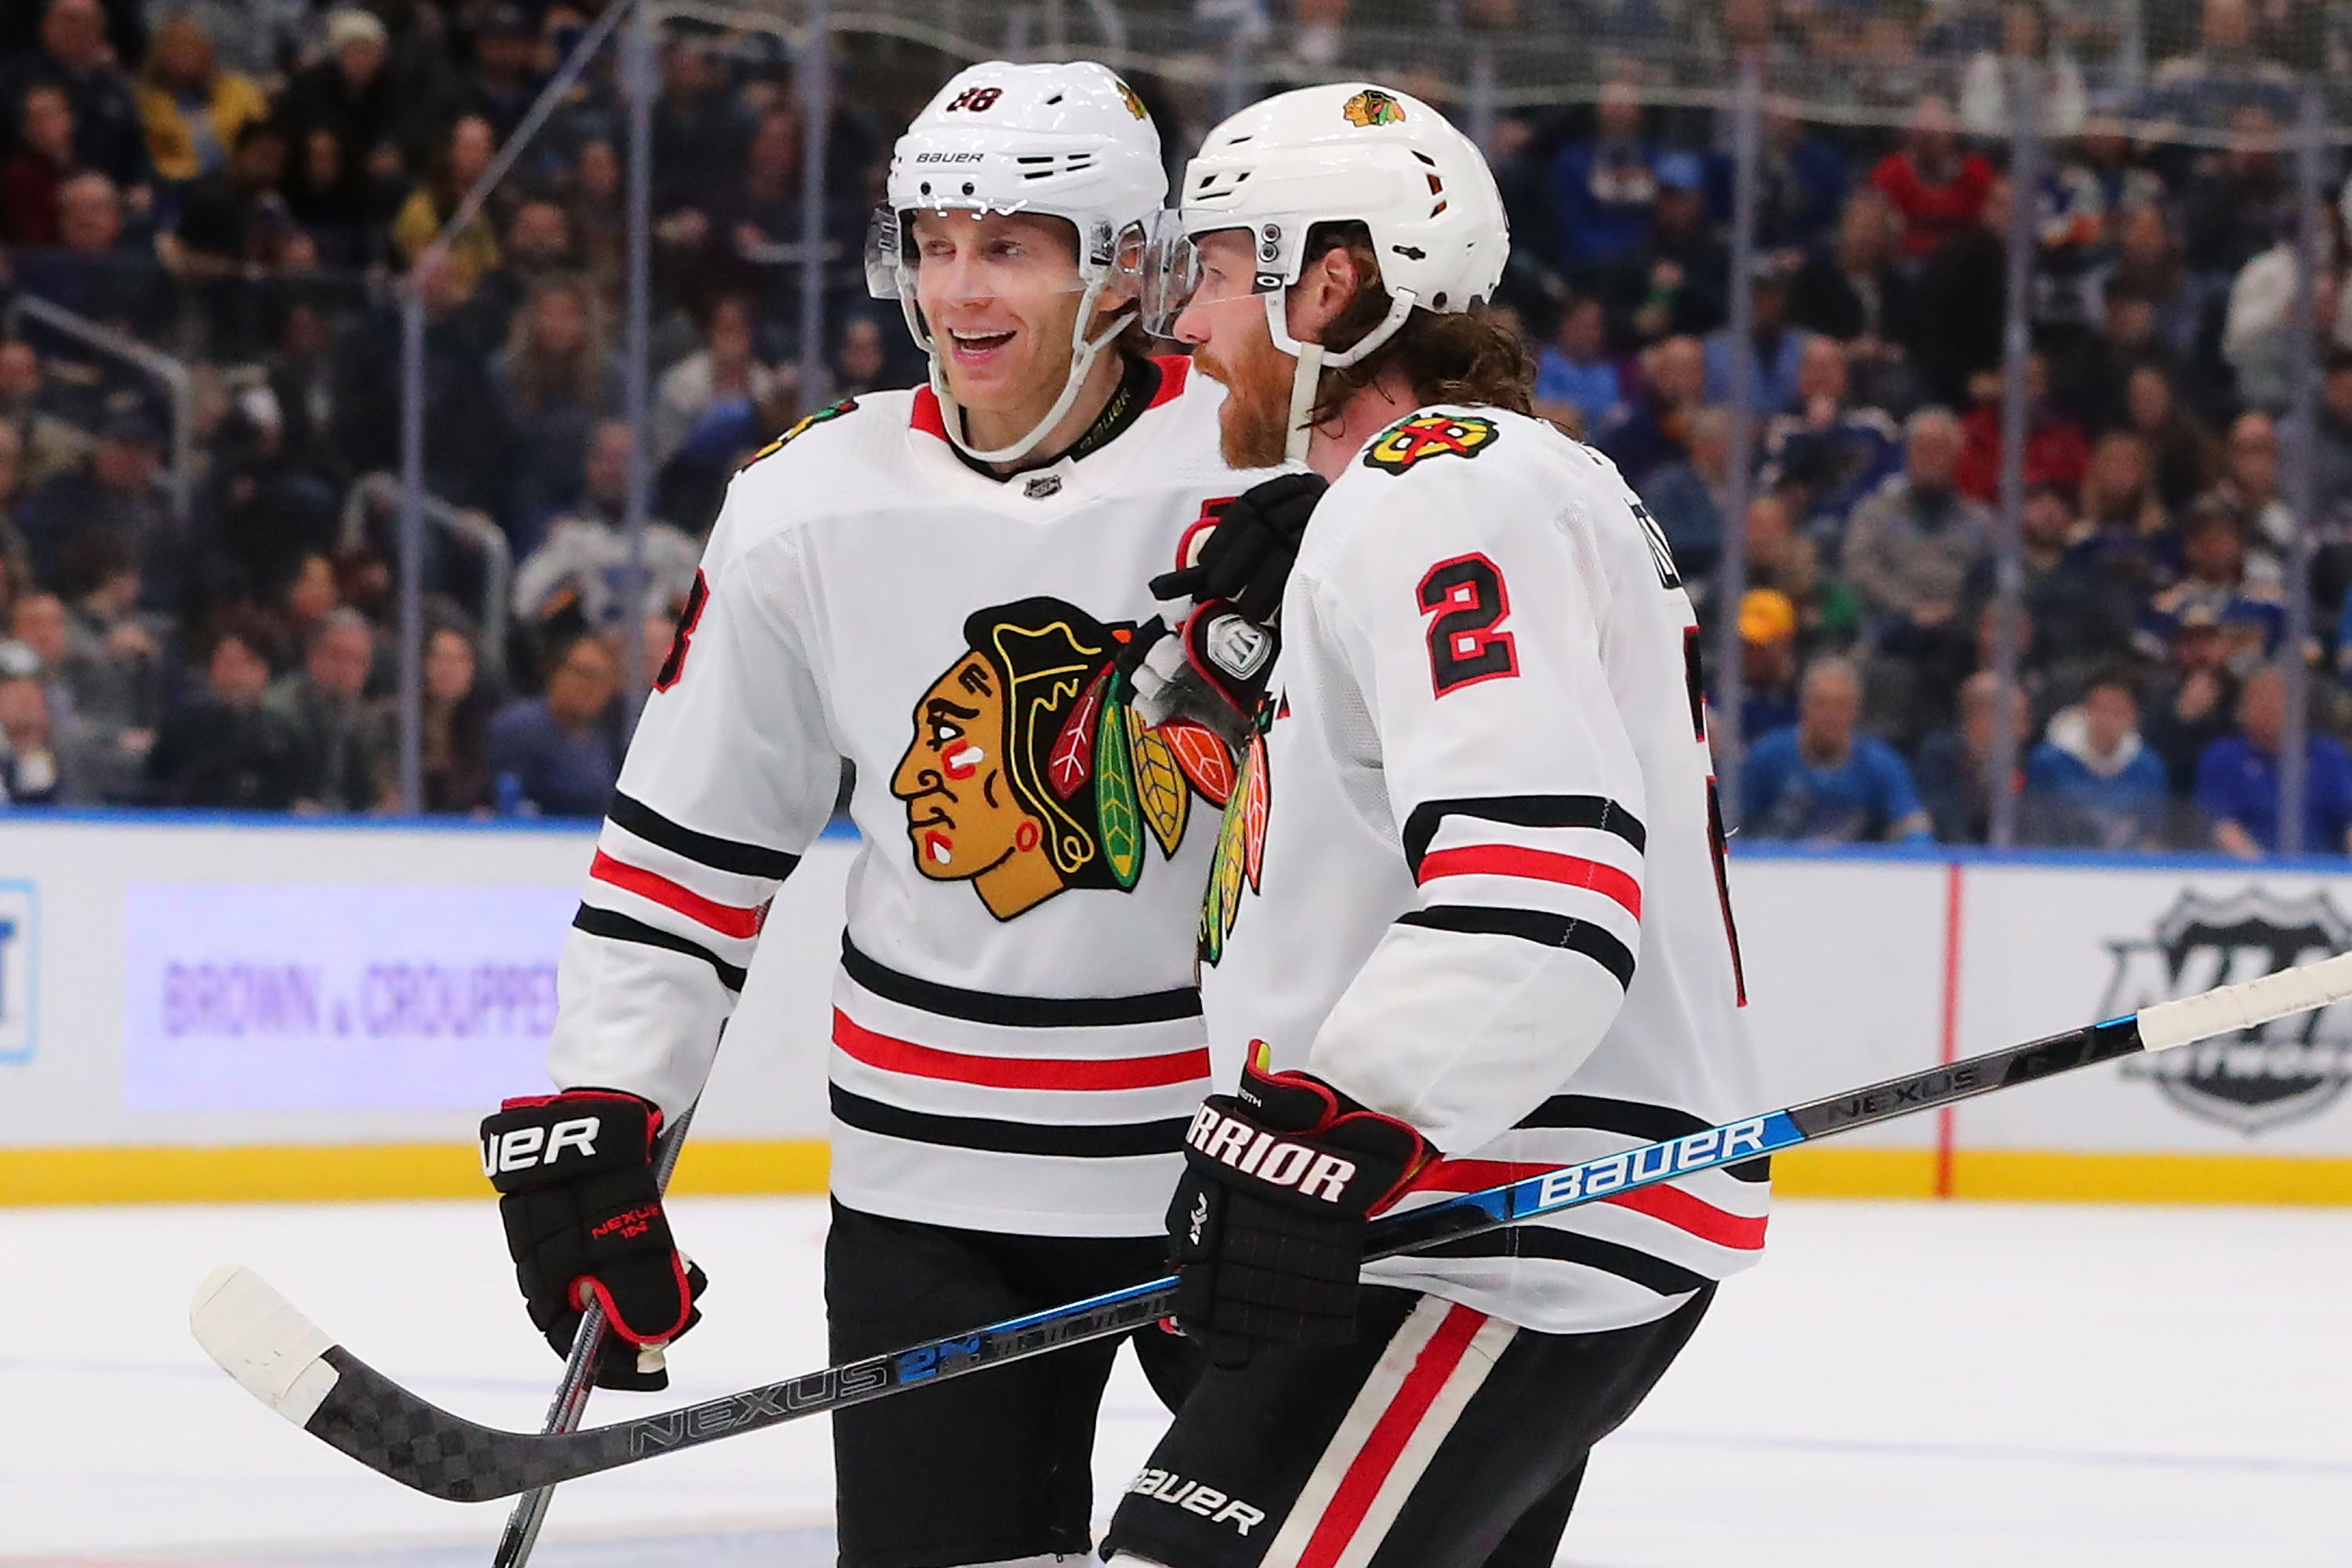 Patrick Kane (left) and Duncan Keith celebrate a goal by Keith against the Blues in February.